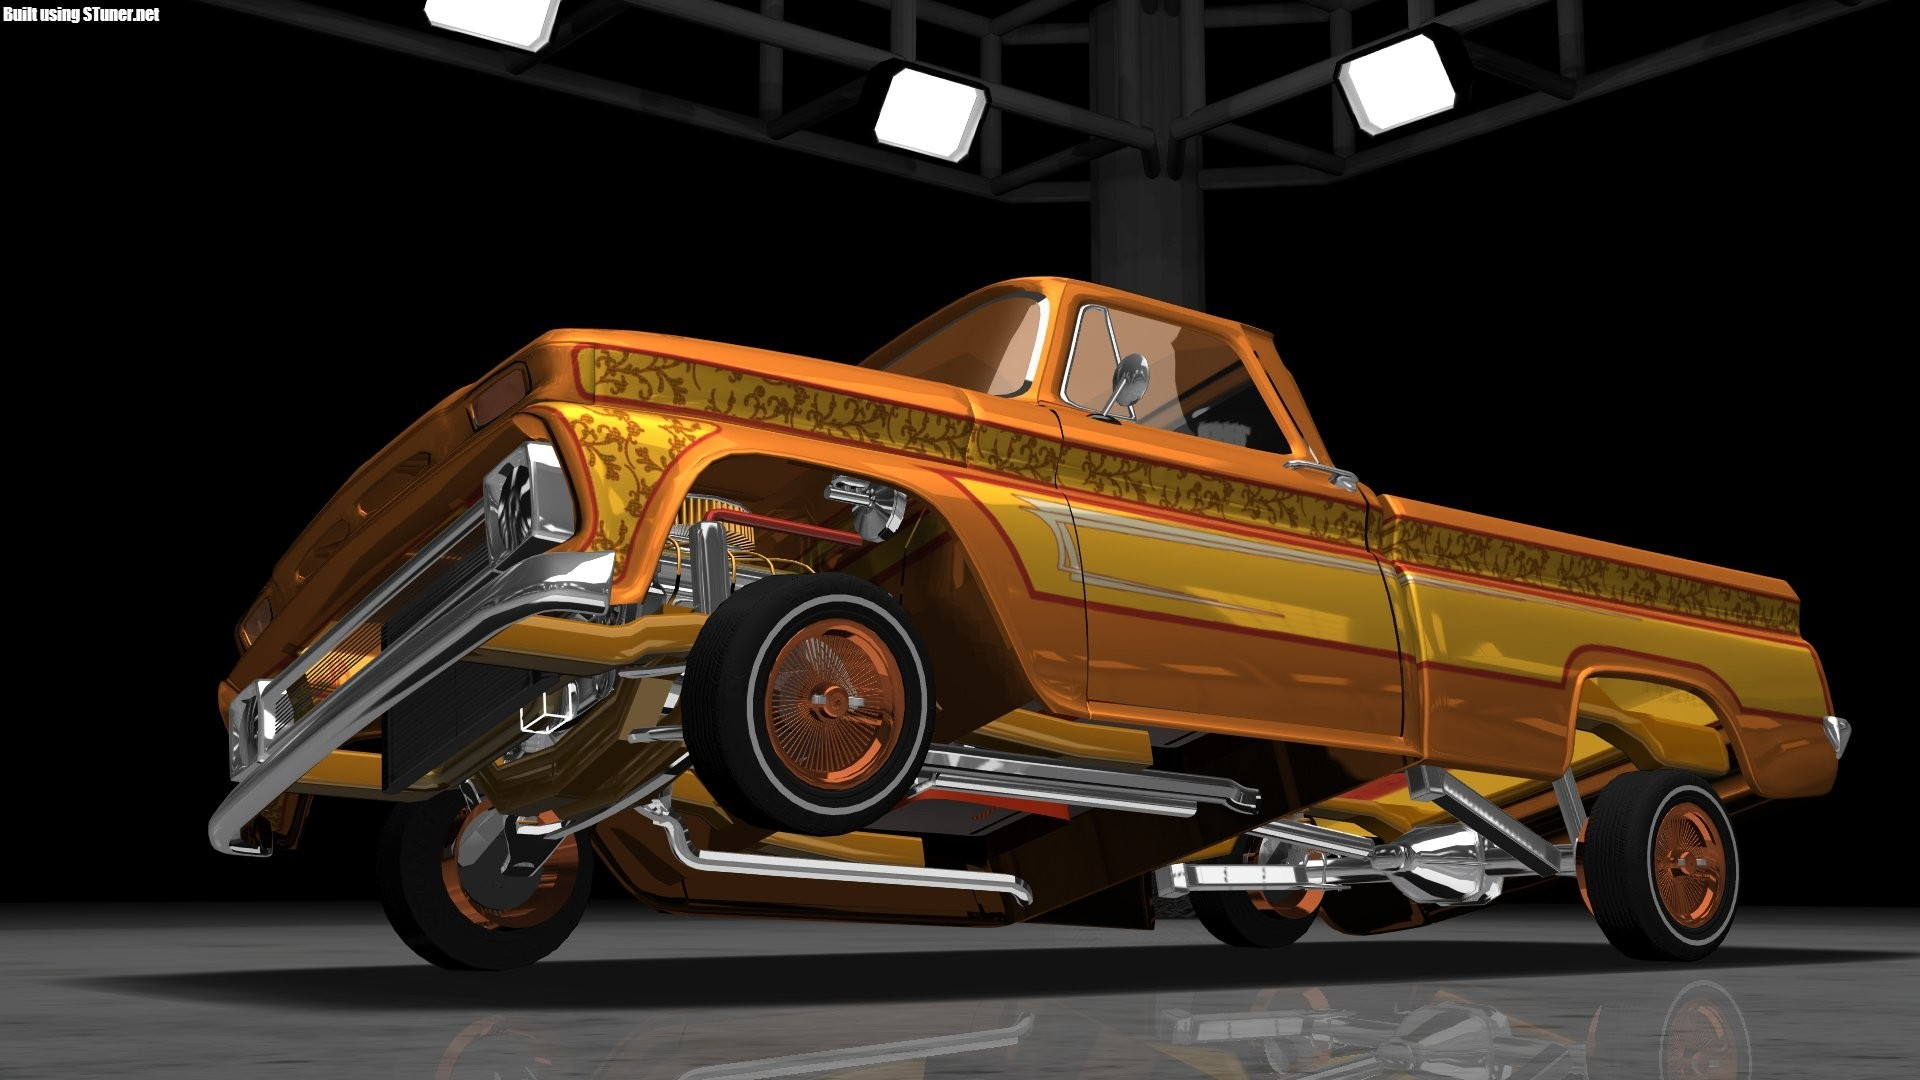 1920x1080 ... wallpapers of lowrider in hqfx lowrider car wallpaper ① ...